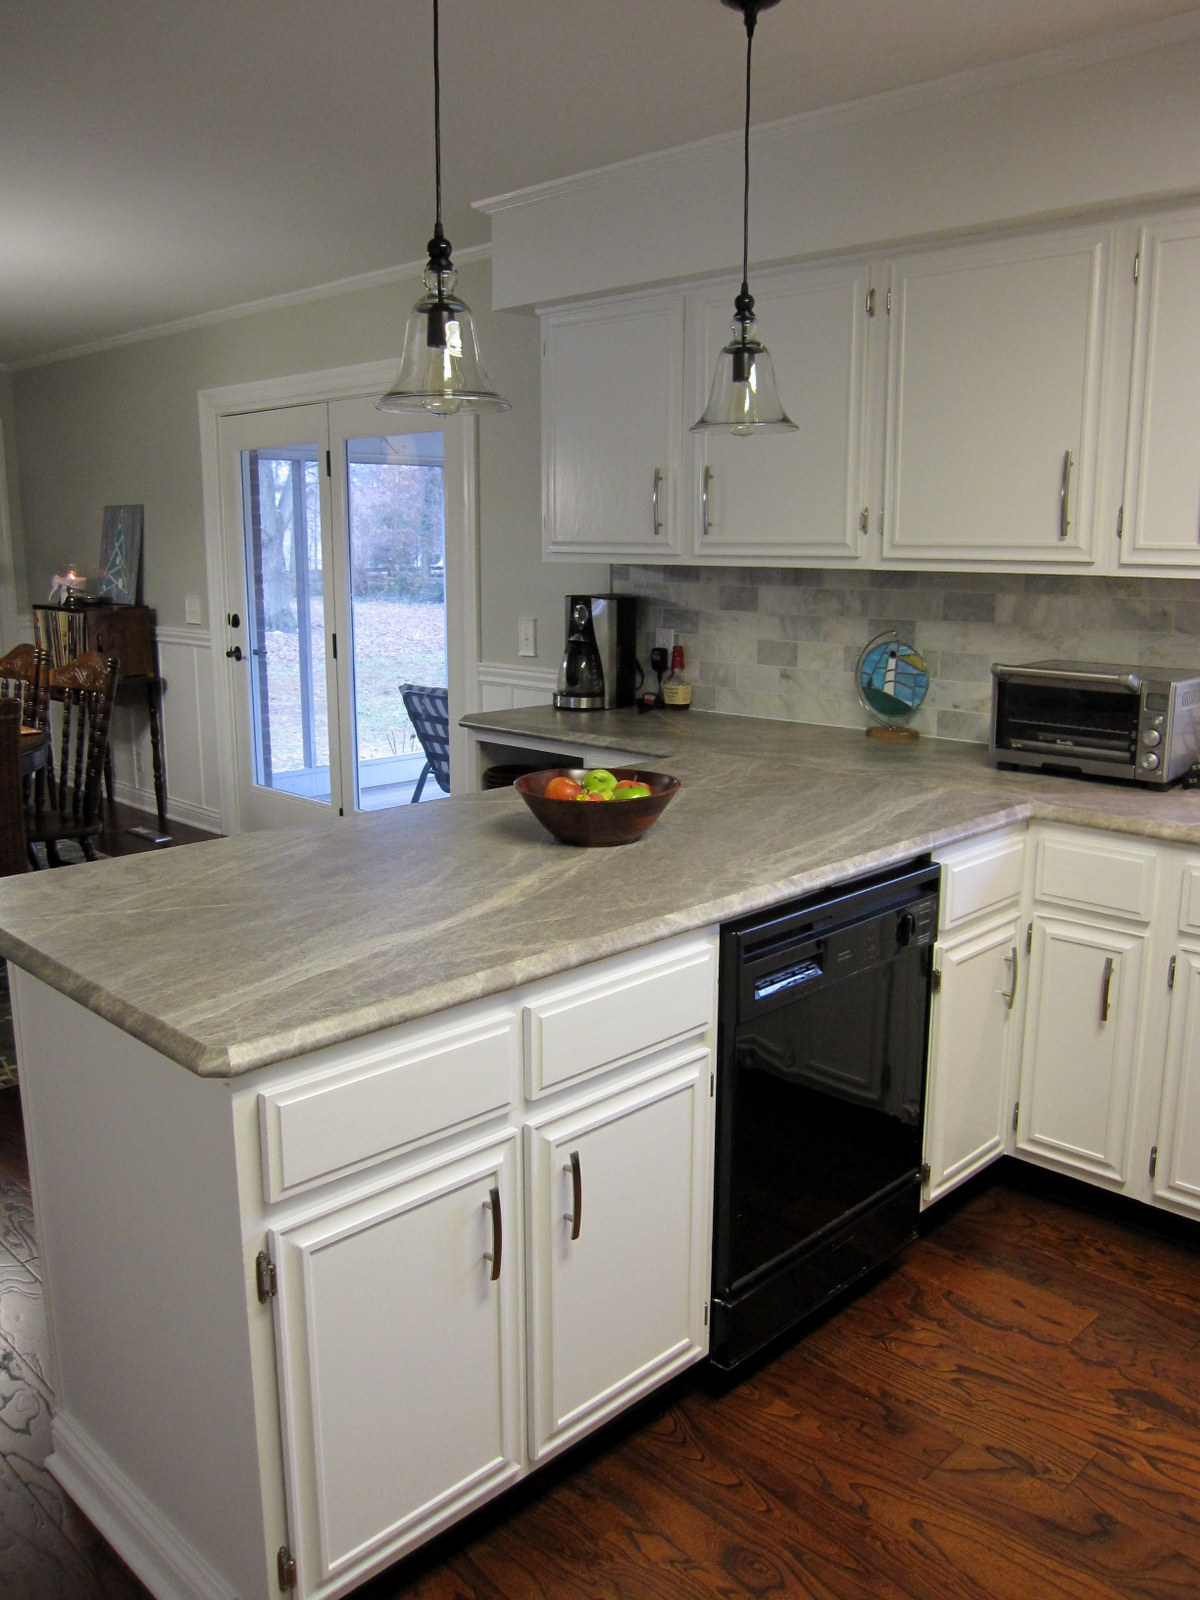 Laminate Bar Countertops : Allie?s new soapstone-look laminate countertops were installed about ...